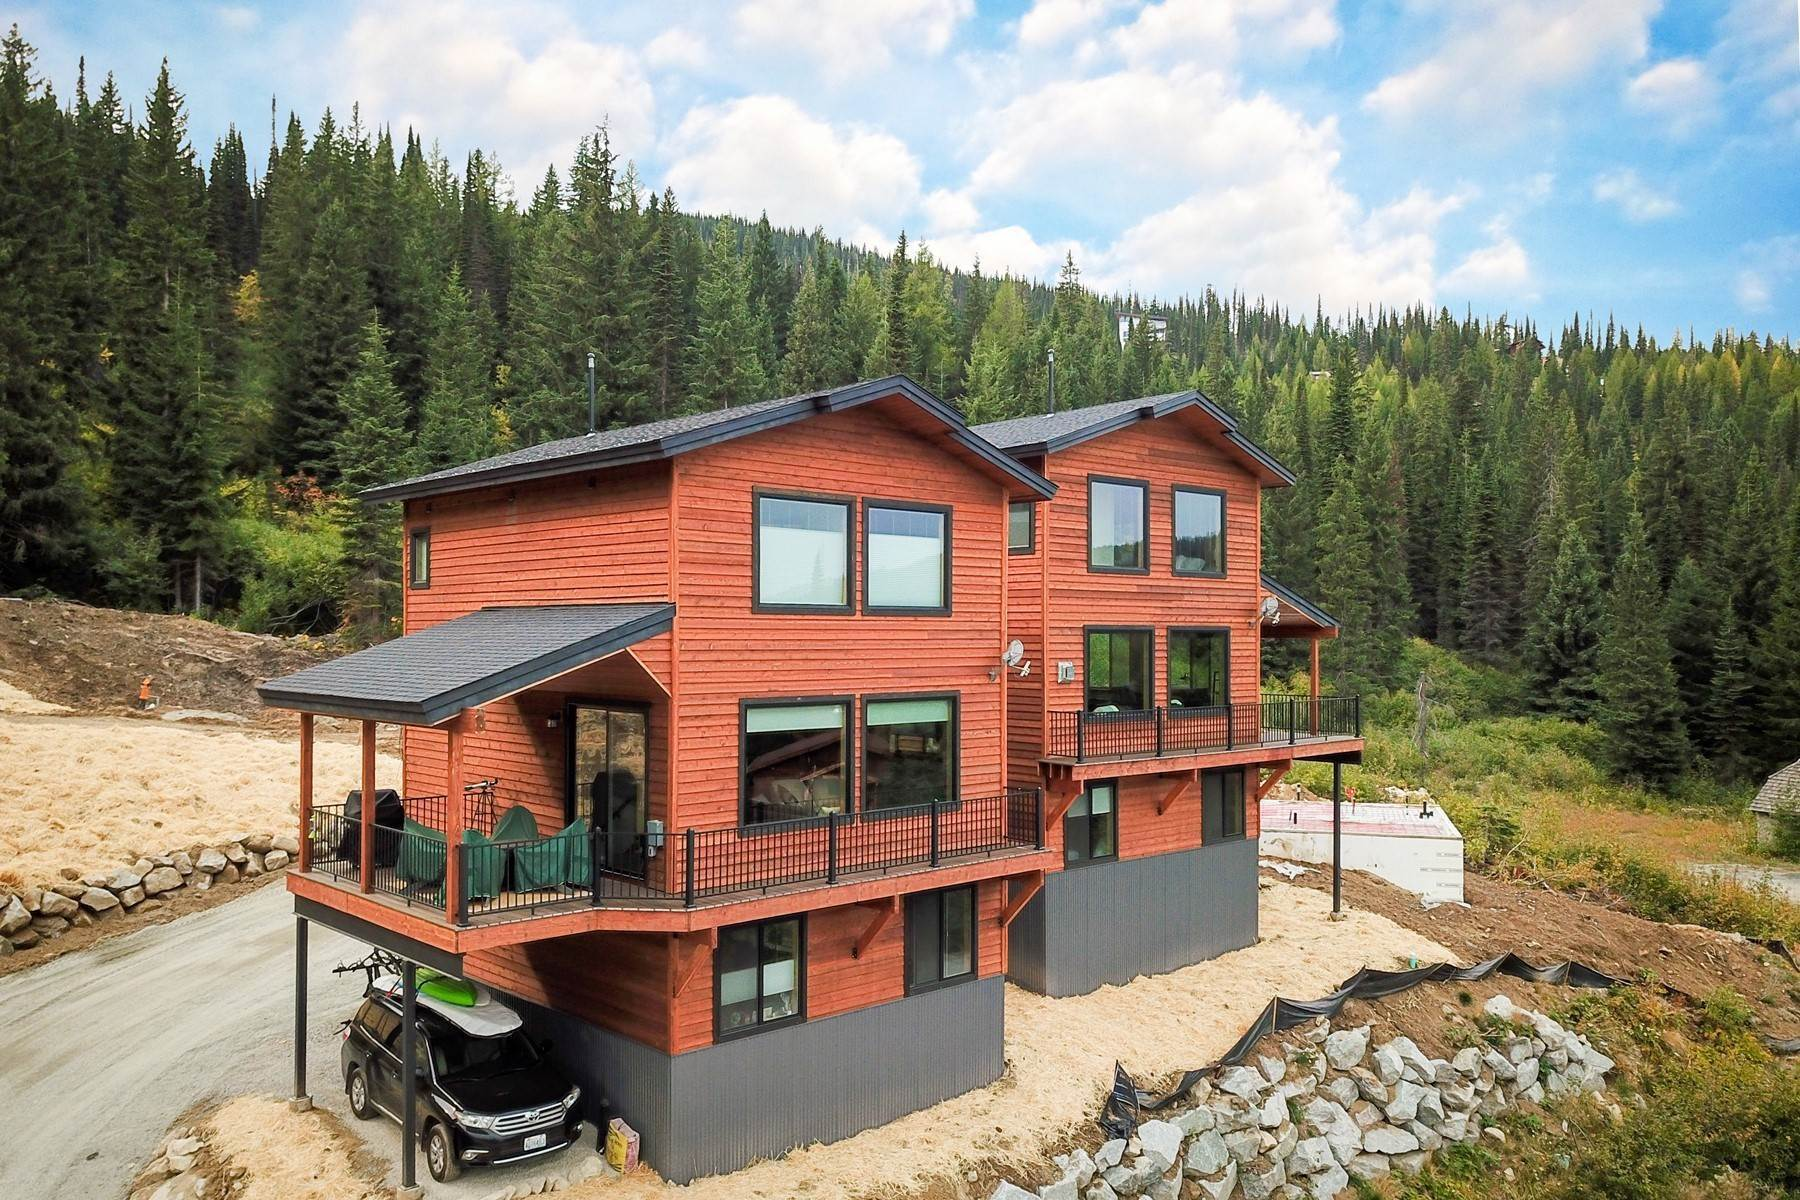 Single Family Homes for Sale at Schweitzer Mountain Getaway Lot 16 Harrison Lane Sandpoint, Idaho 83864